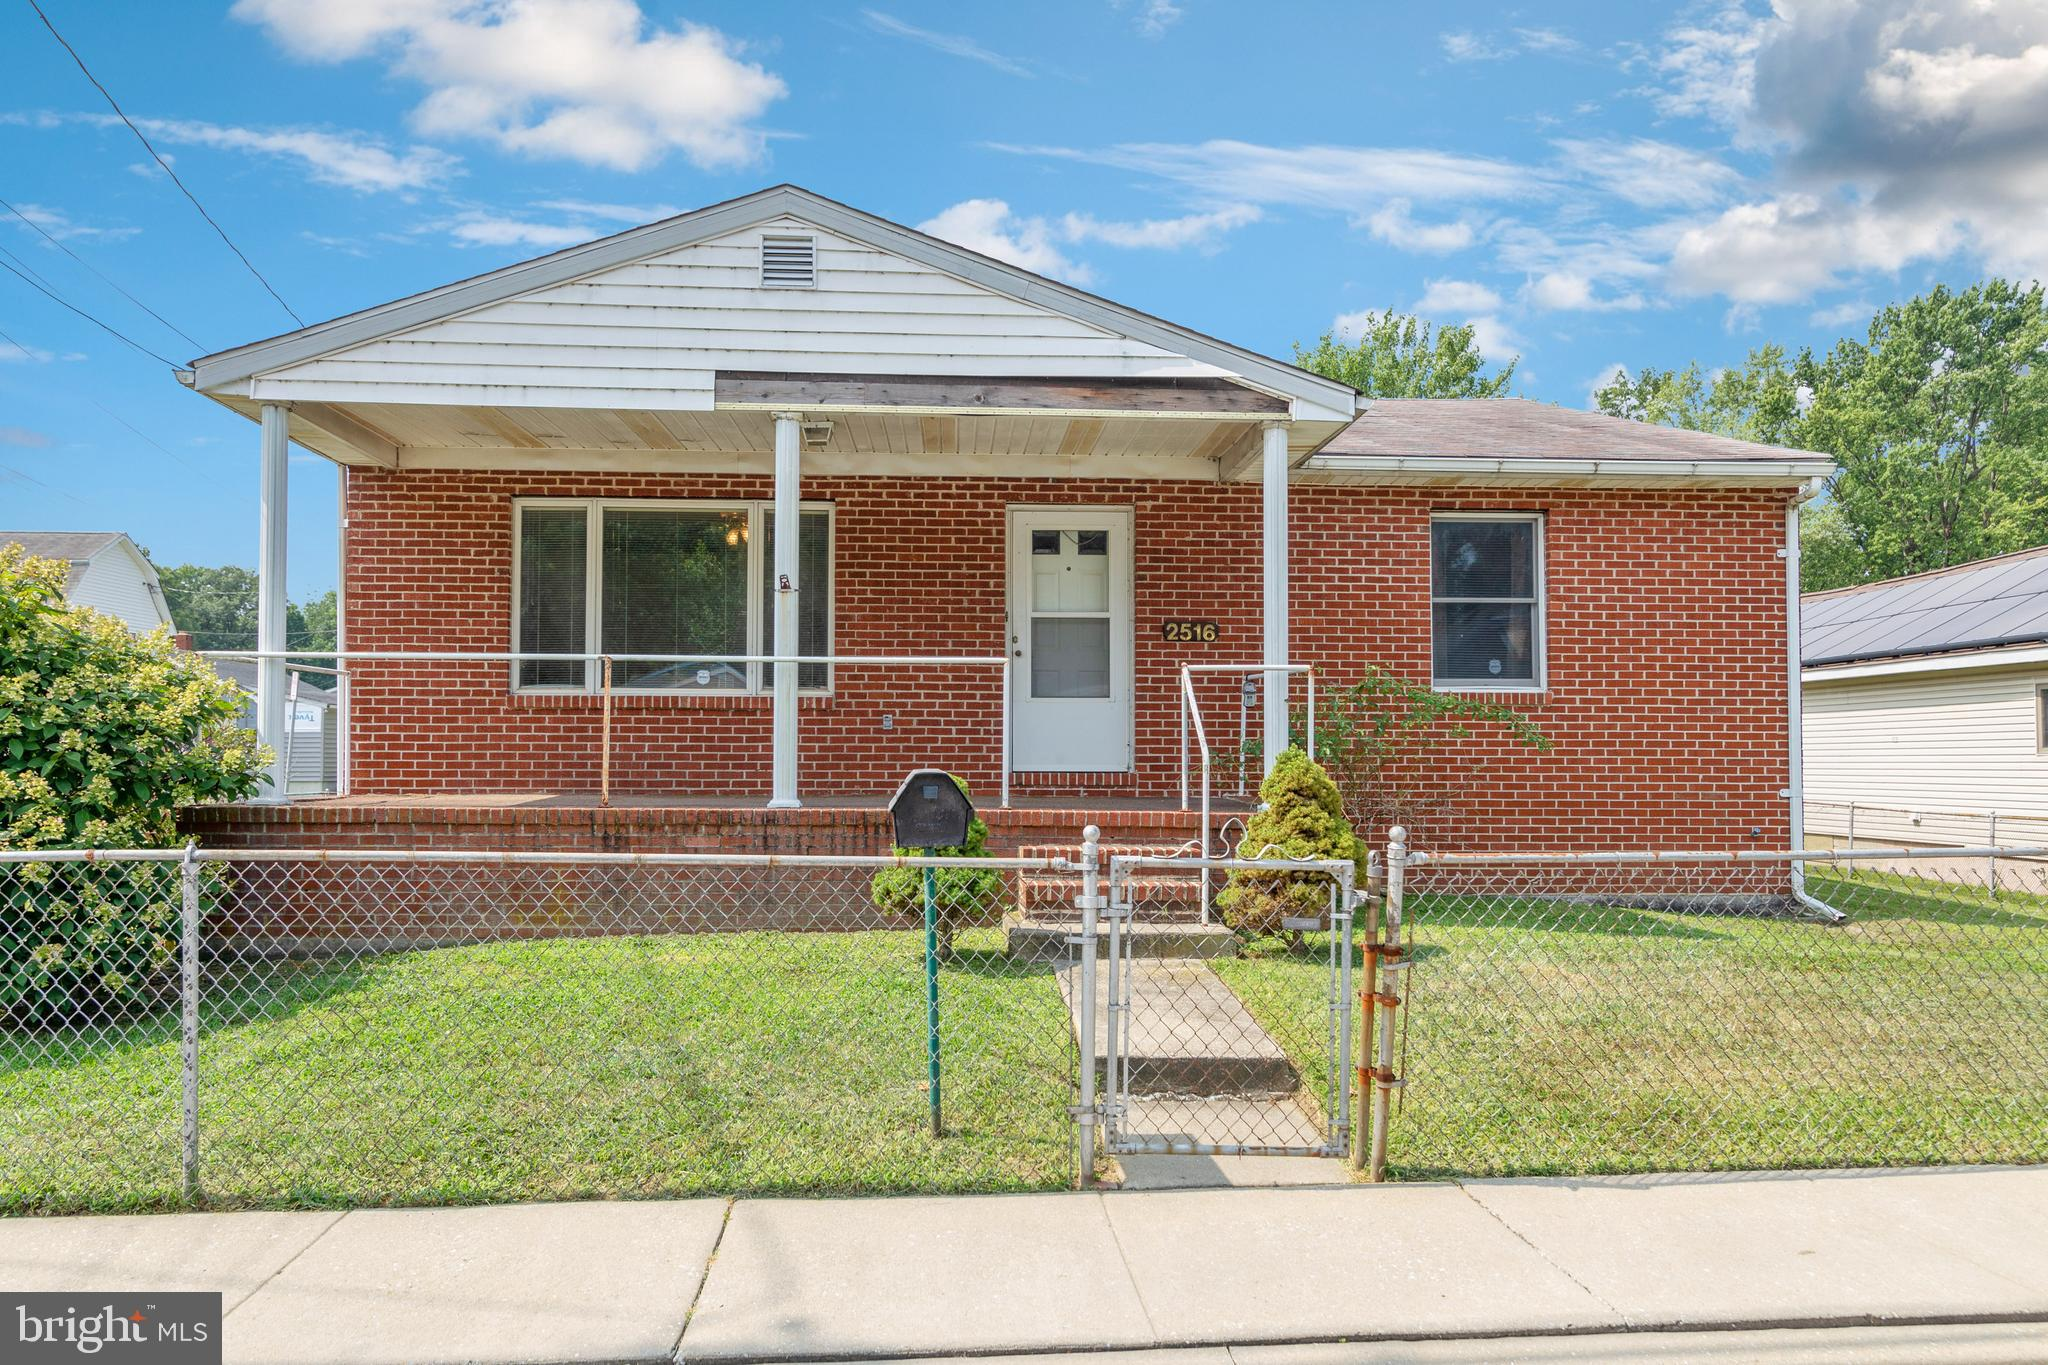 2516 SYCAMORE AVENUE, BALTIMORE, MD 21219